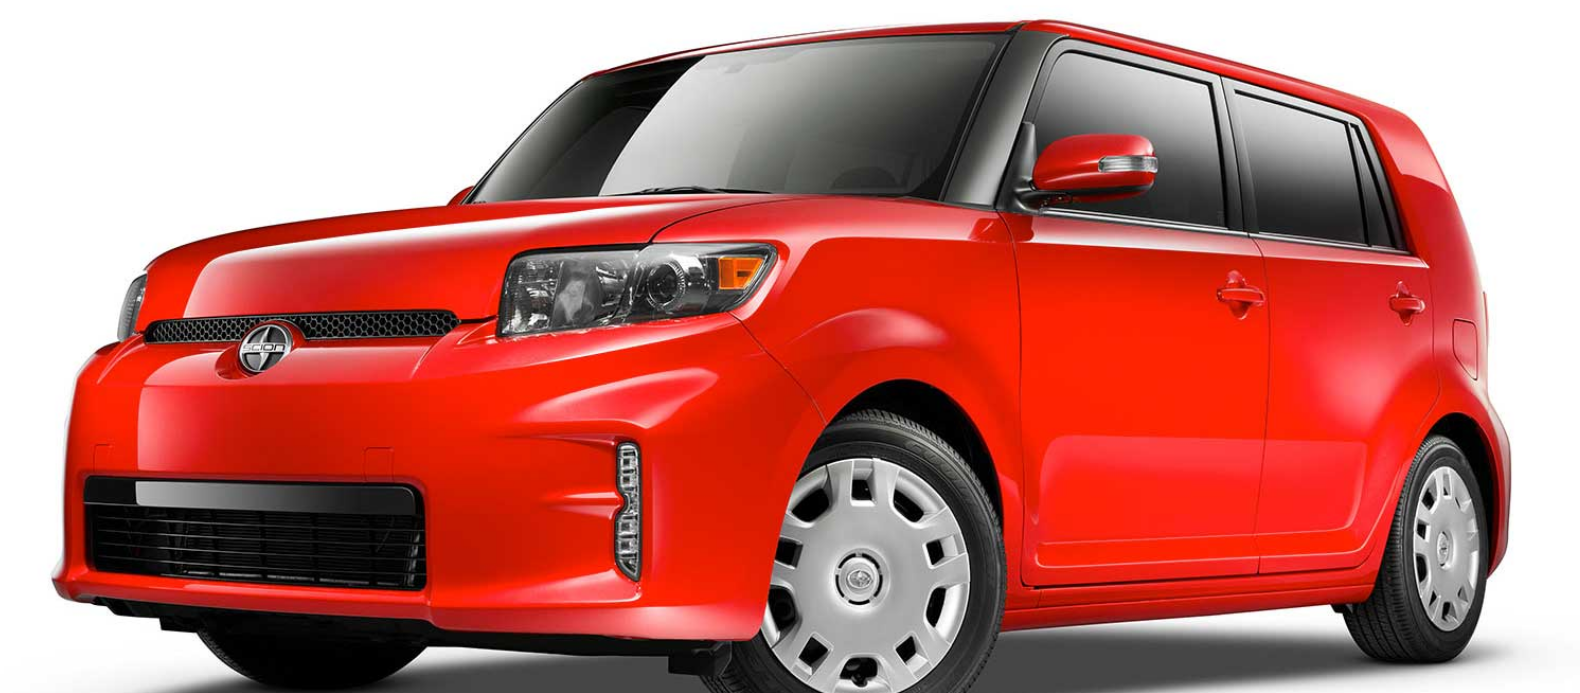 Scion cars scion xb cars for sale consumer reports read more compact hatchbacks doors html